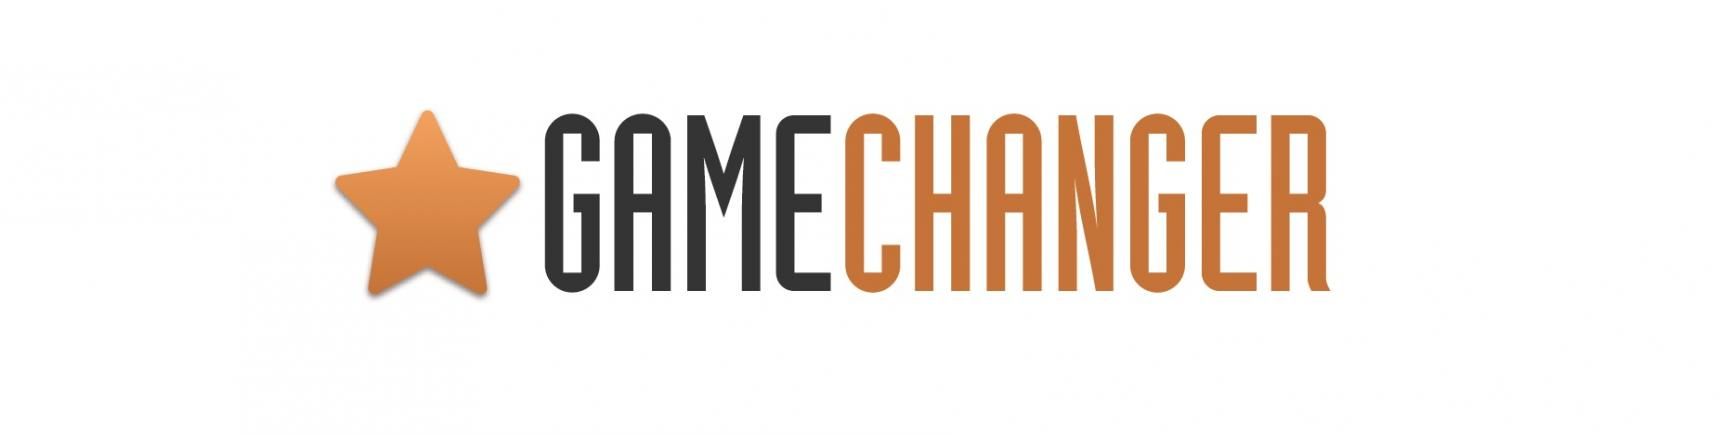 GameChanger logo